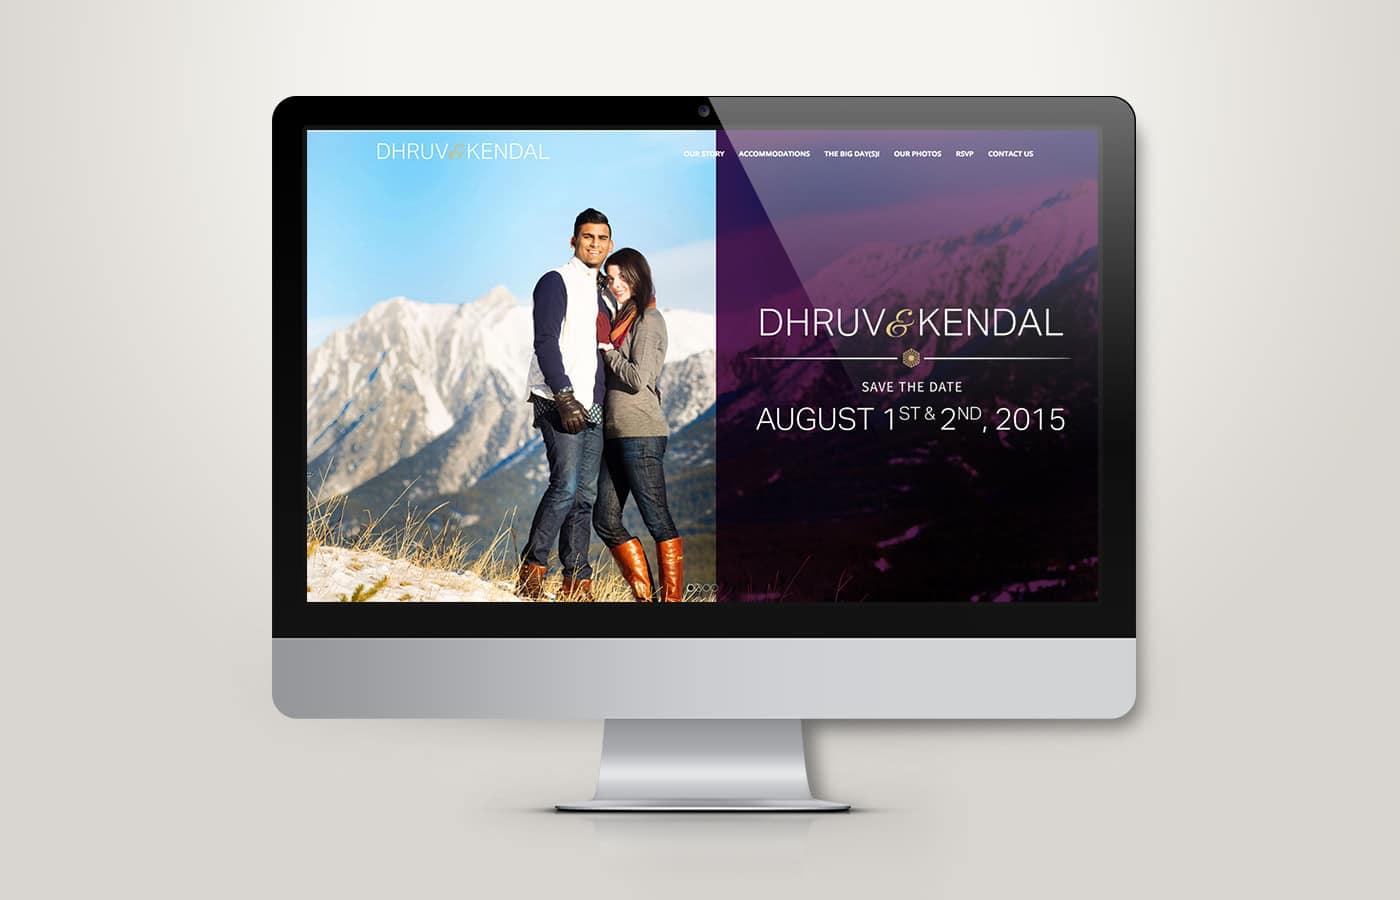 Edmonton Website Design | Dhruv and Kendal Wedding Website